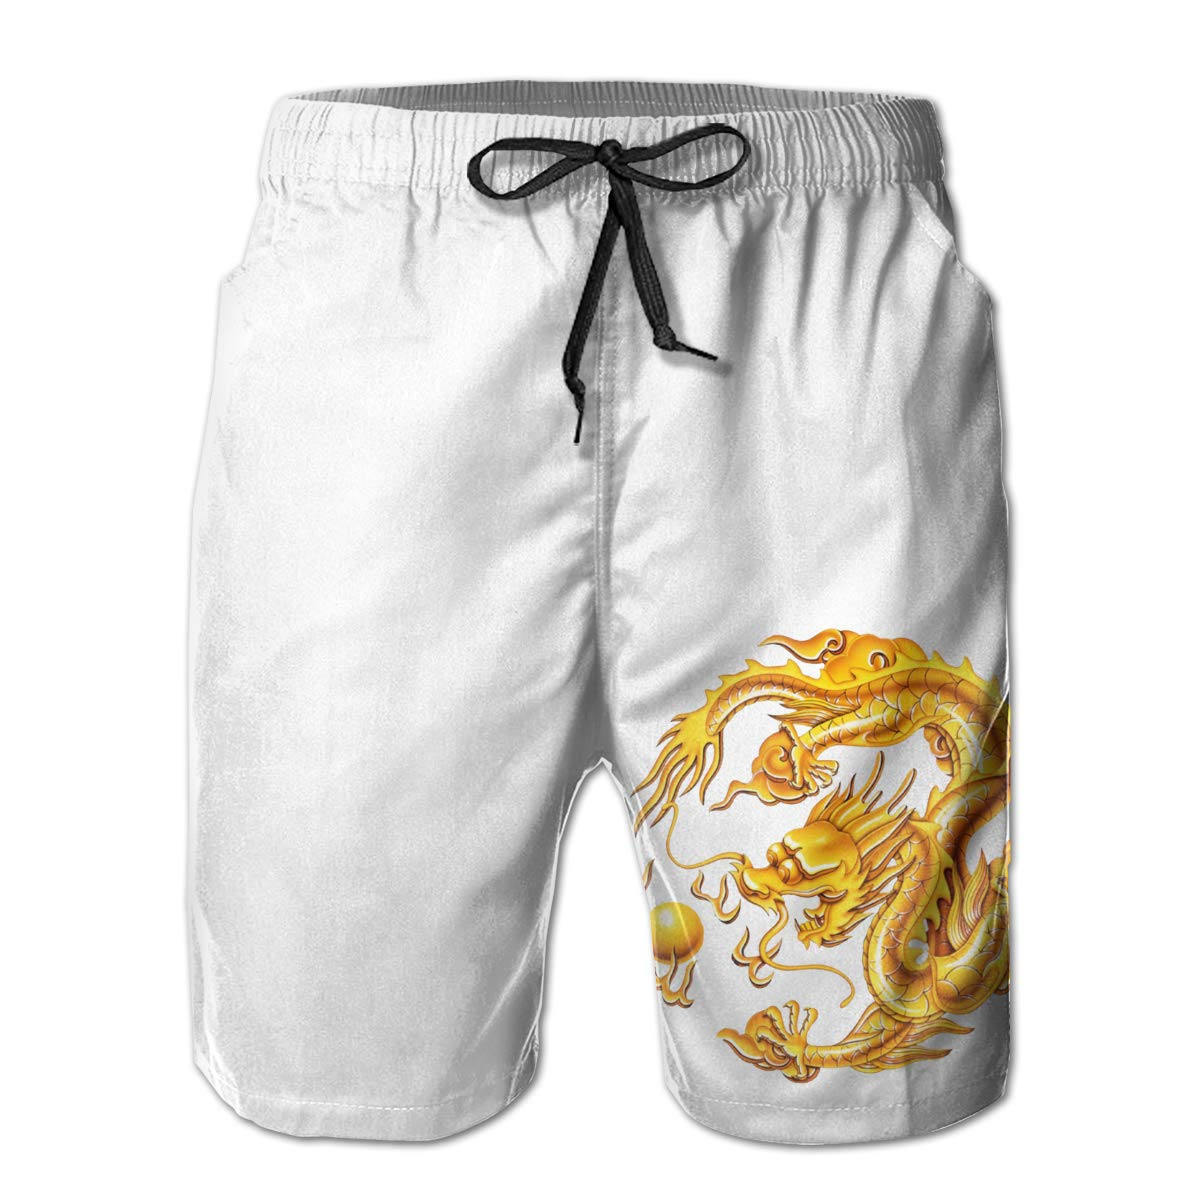 HZamora/_H Mens Chinese Gold Dragon Summer Breathable Quick-Drying Swim Trunks Beach Shorts Cargo Shorts L